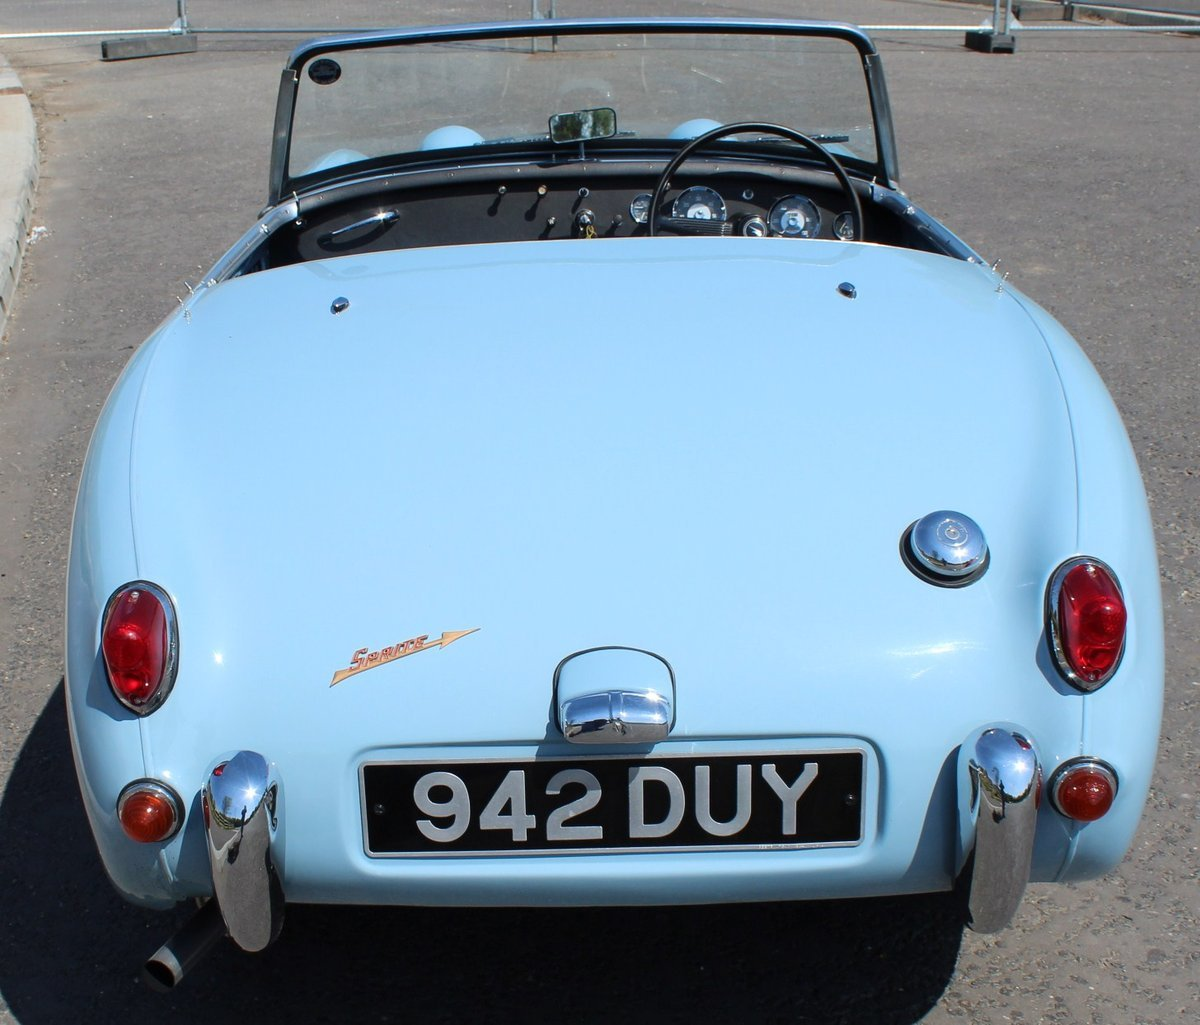 1960 1961 Austin Healey Frog Eye Sprite 56,000 miles SUPERB For Sale (picture 3 of 6)